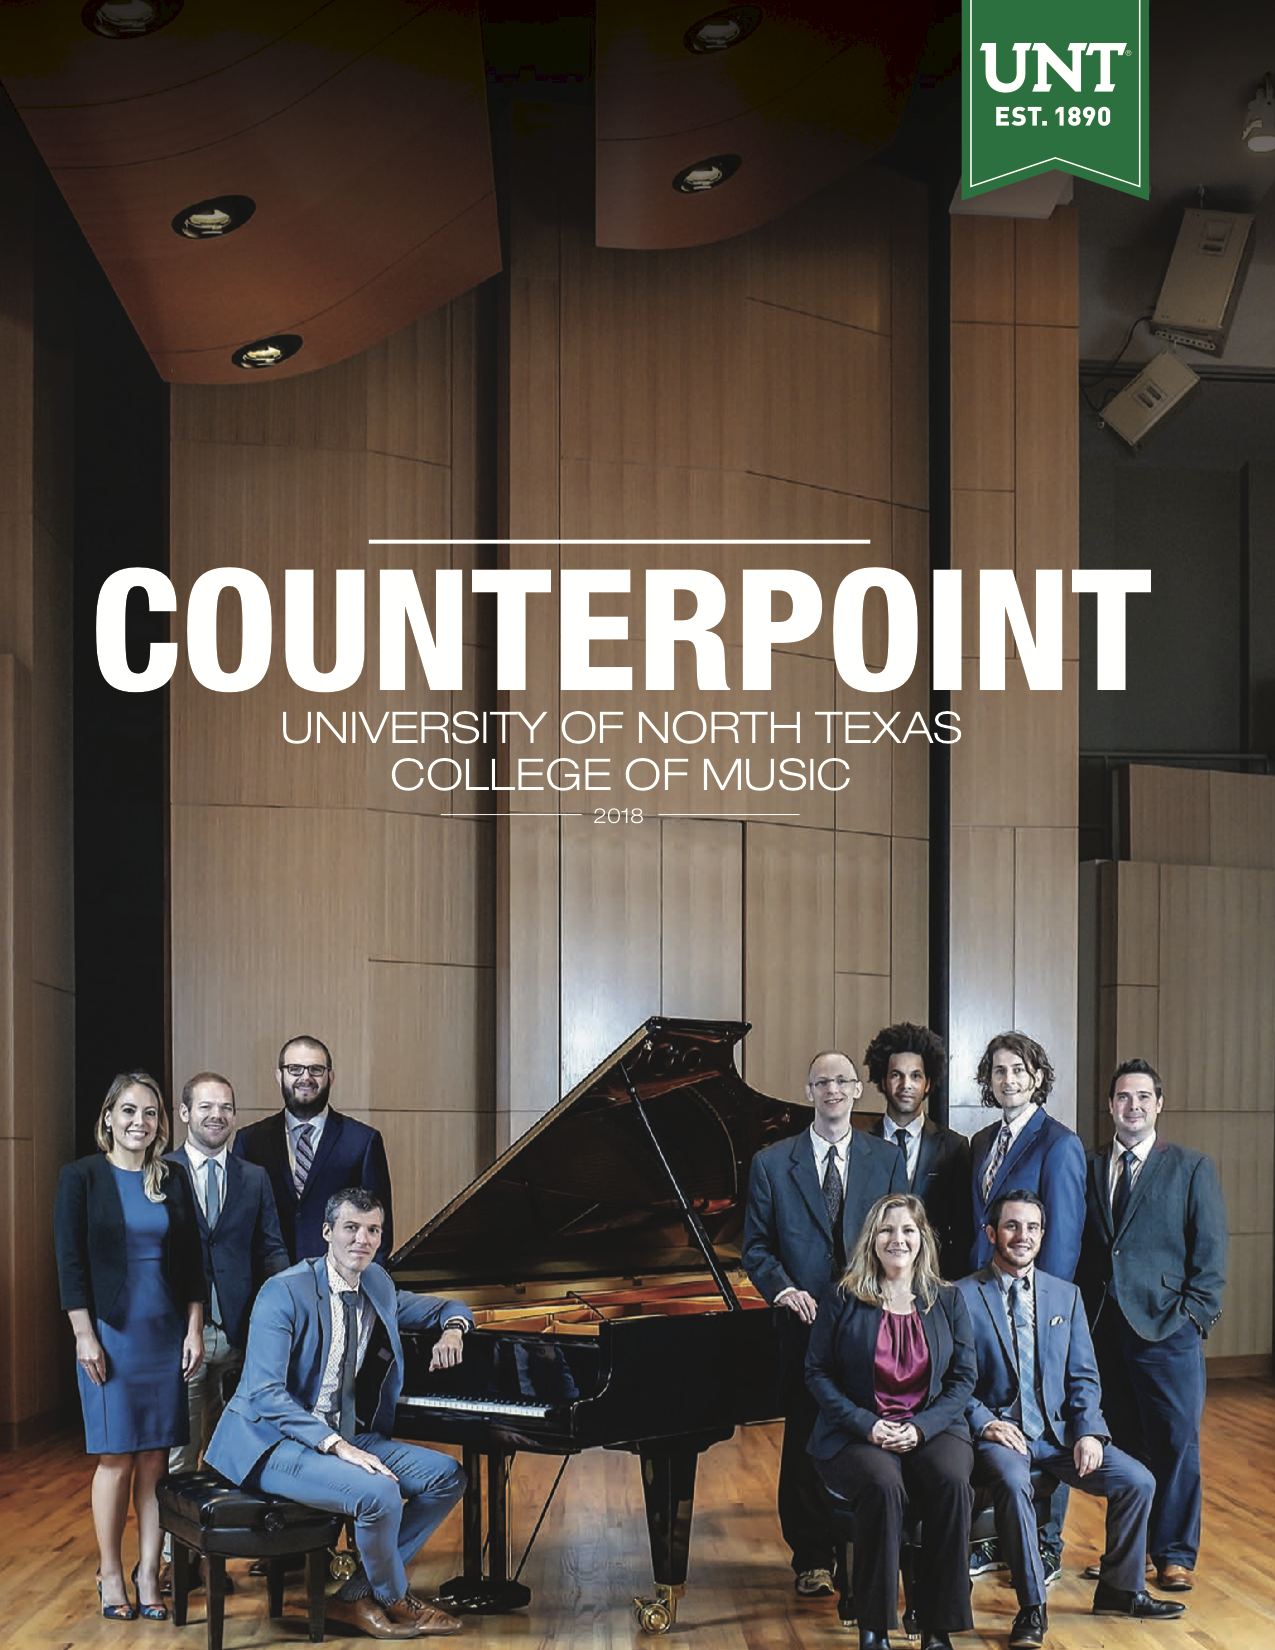 Counterpoint 2018 Front Cover, Featuring UNT Faculty